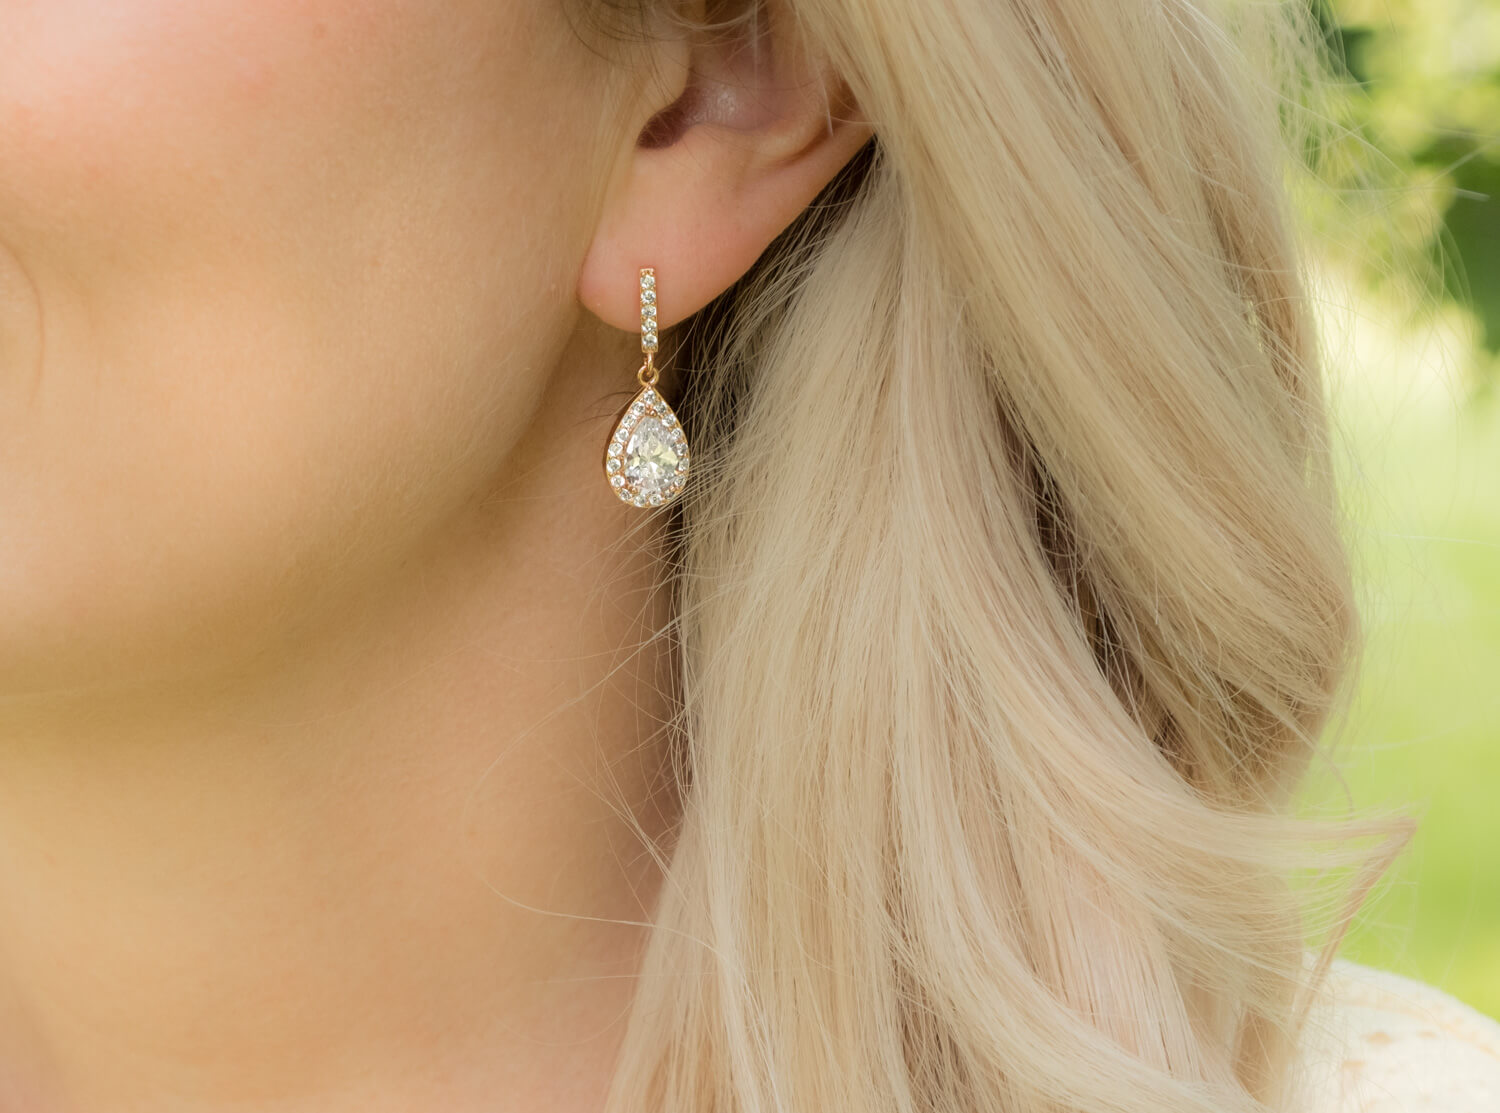 lady with rose golden earrings from drks